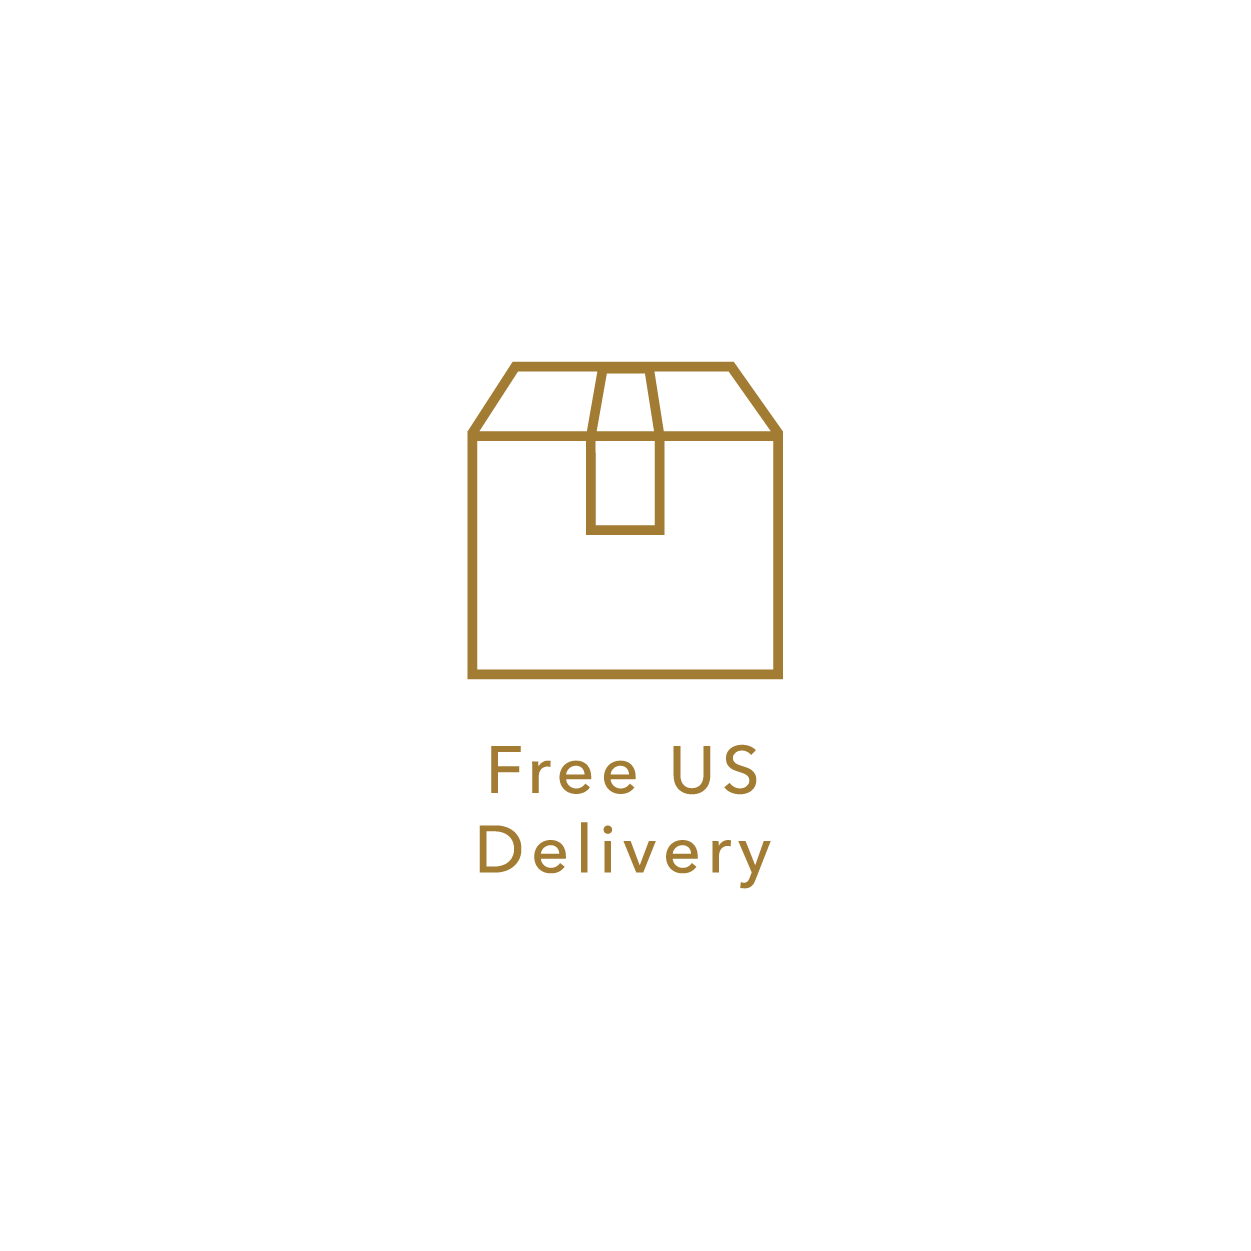 Free US Delivery.png